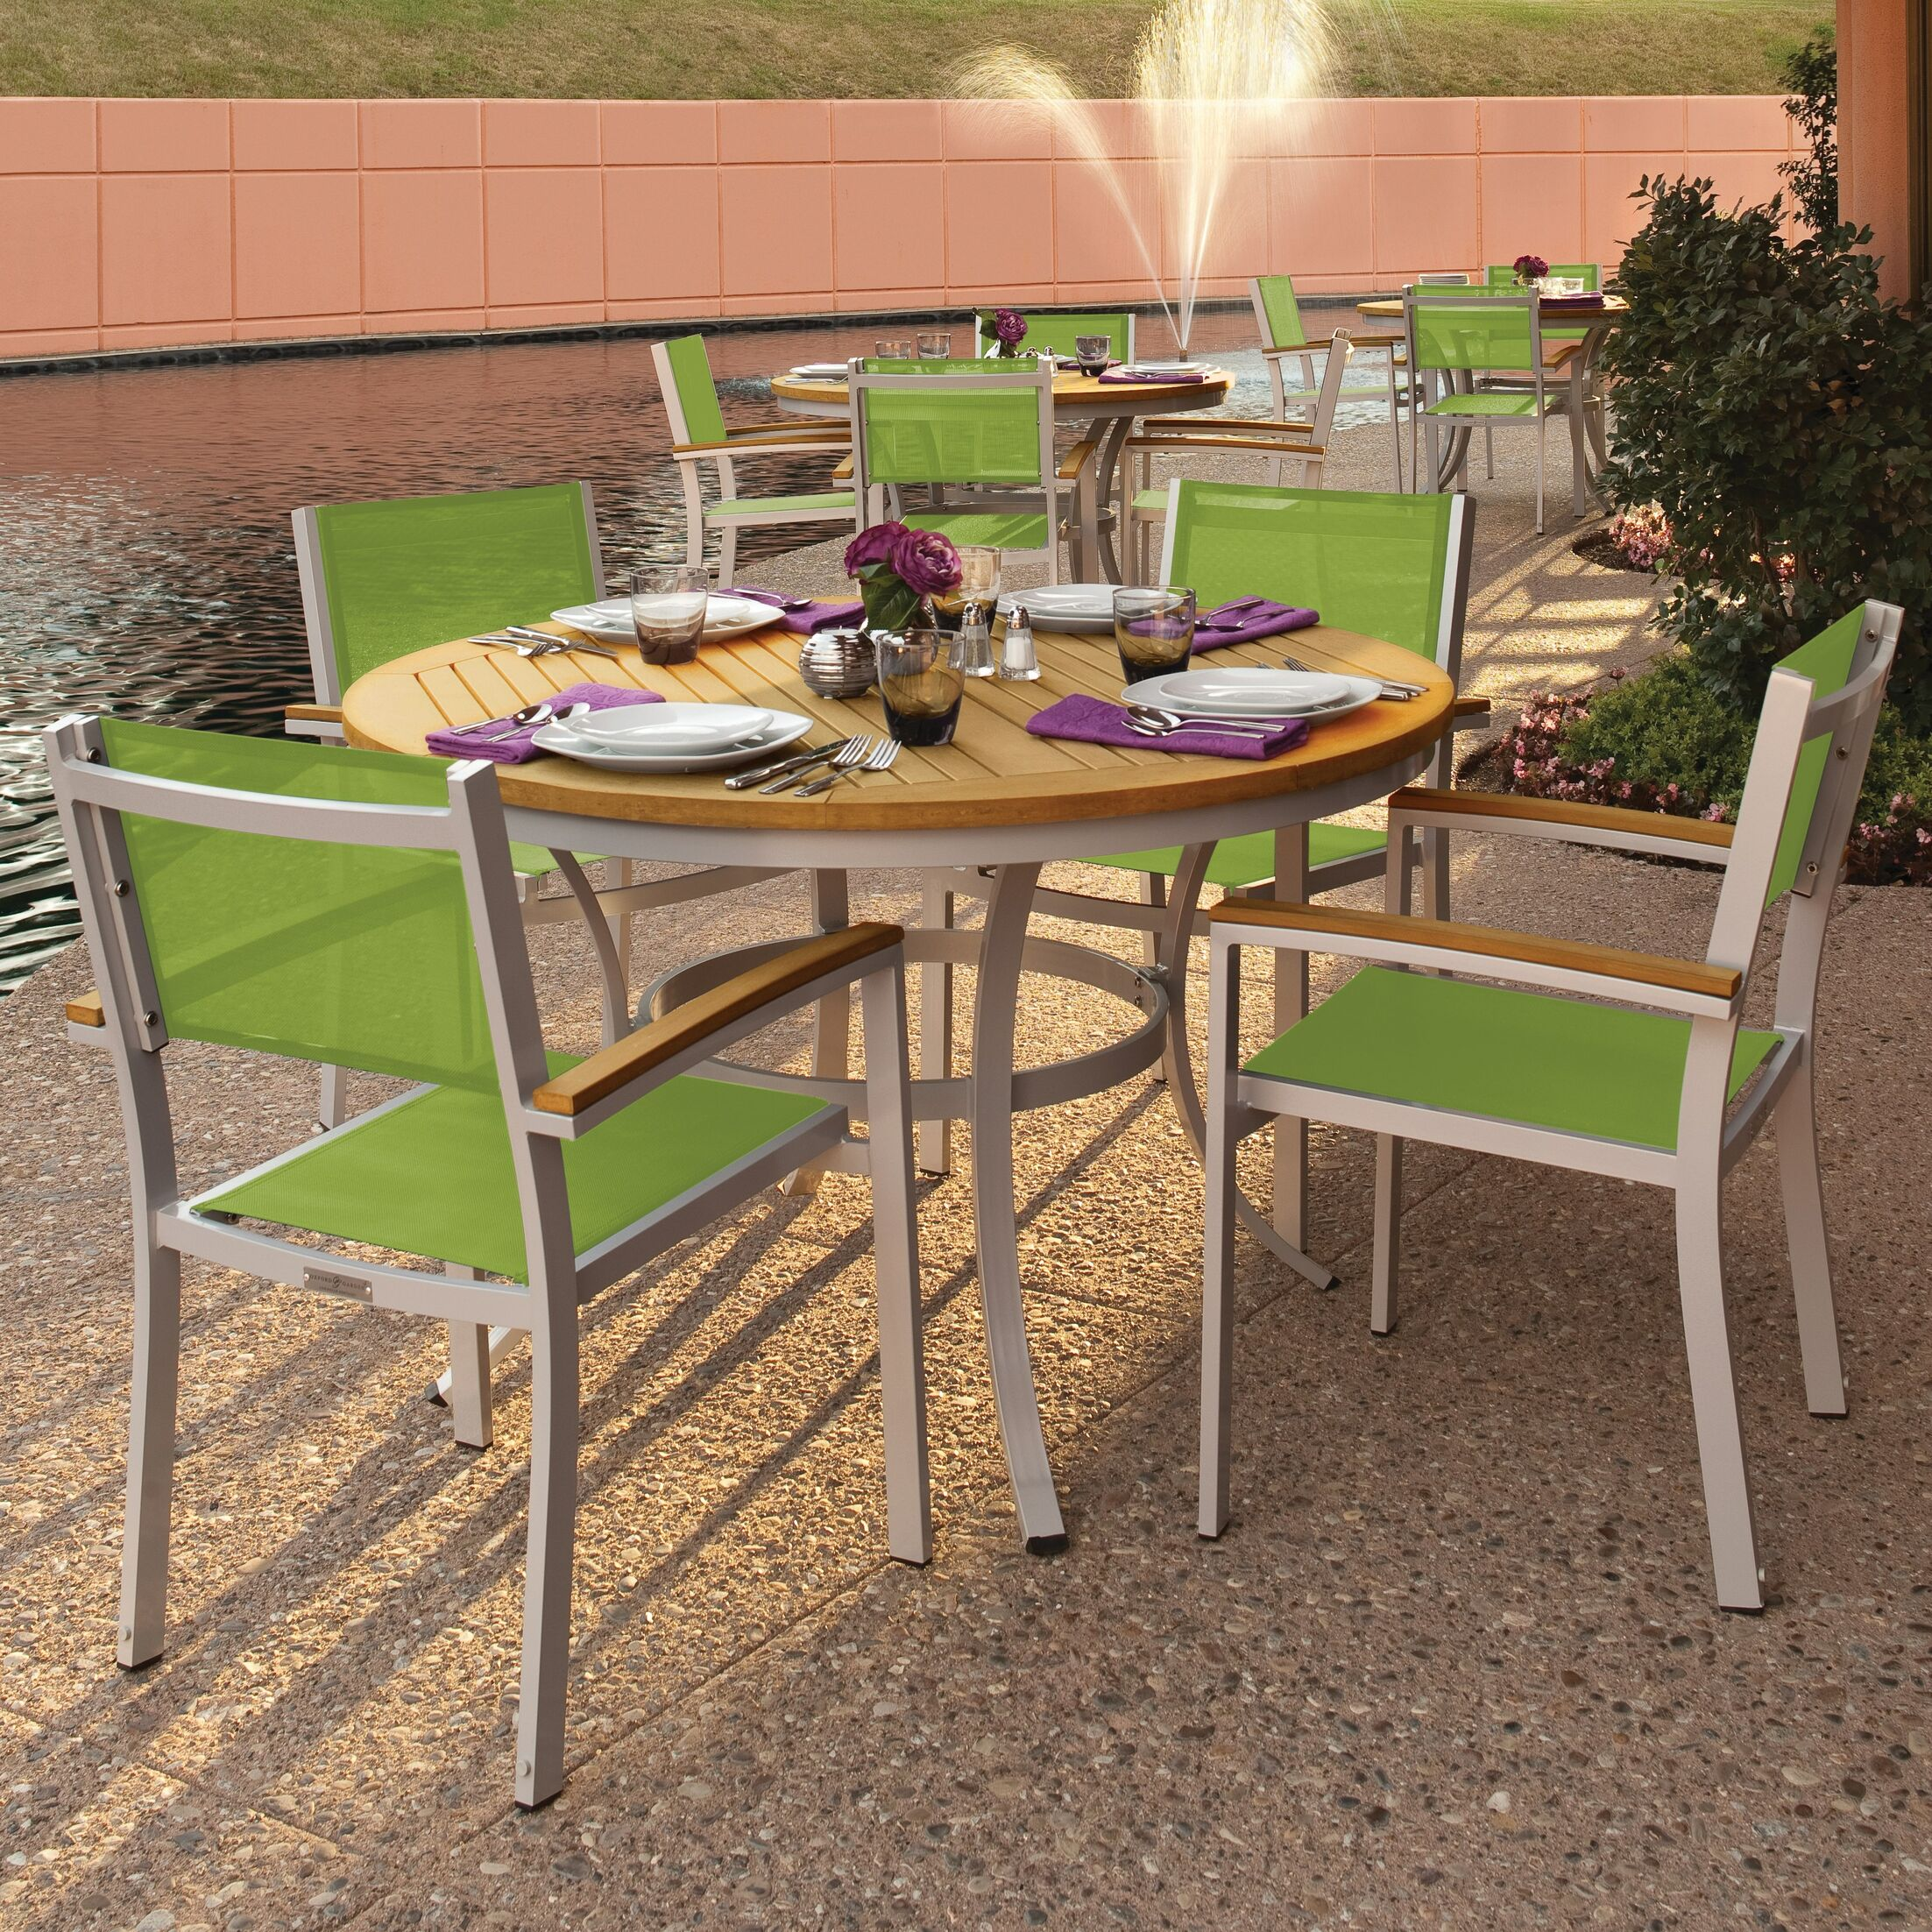 Farmington 5 Piece Dining Set with Green Sling Back chairs Finish: Natural